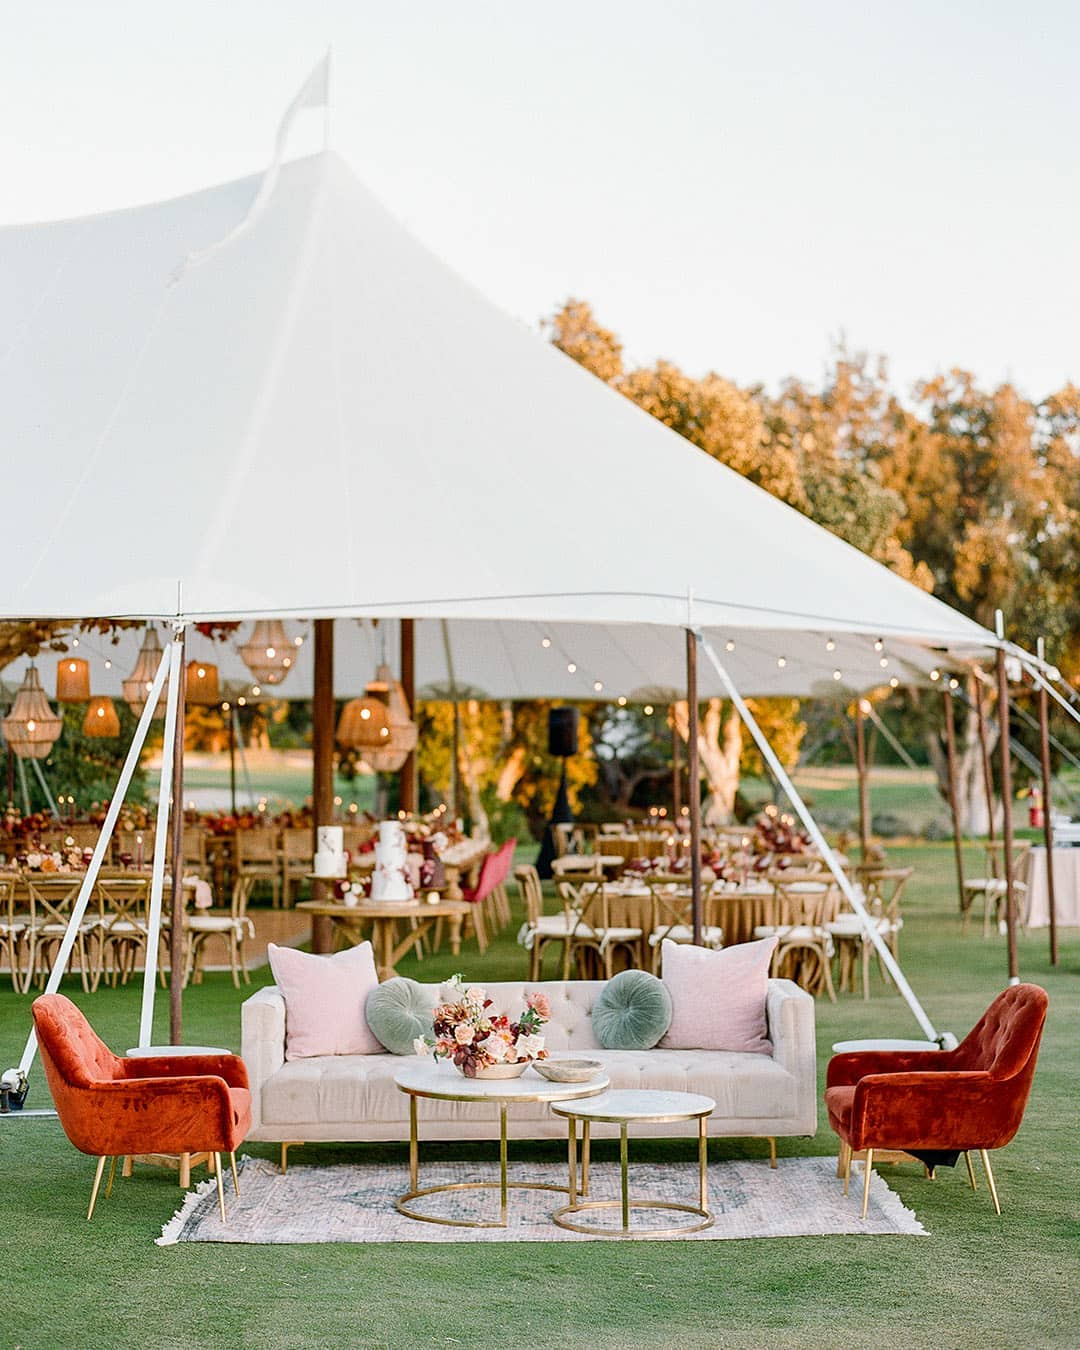 velvet couches at outdoor reception